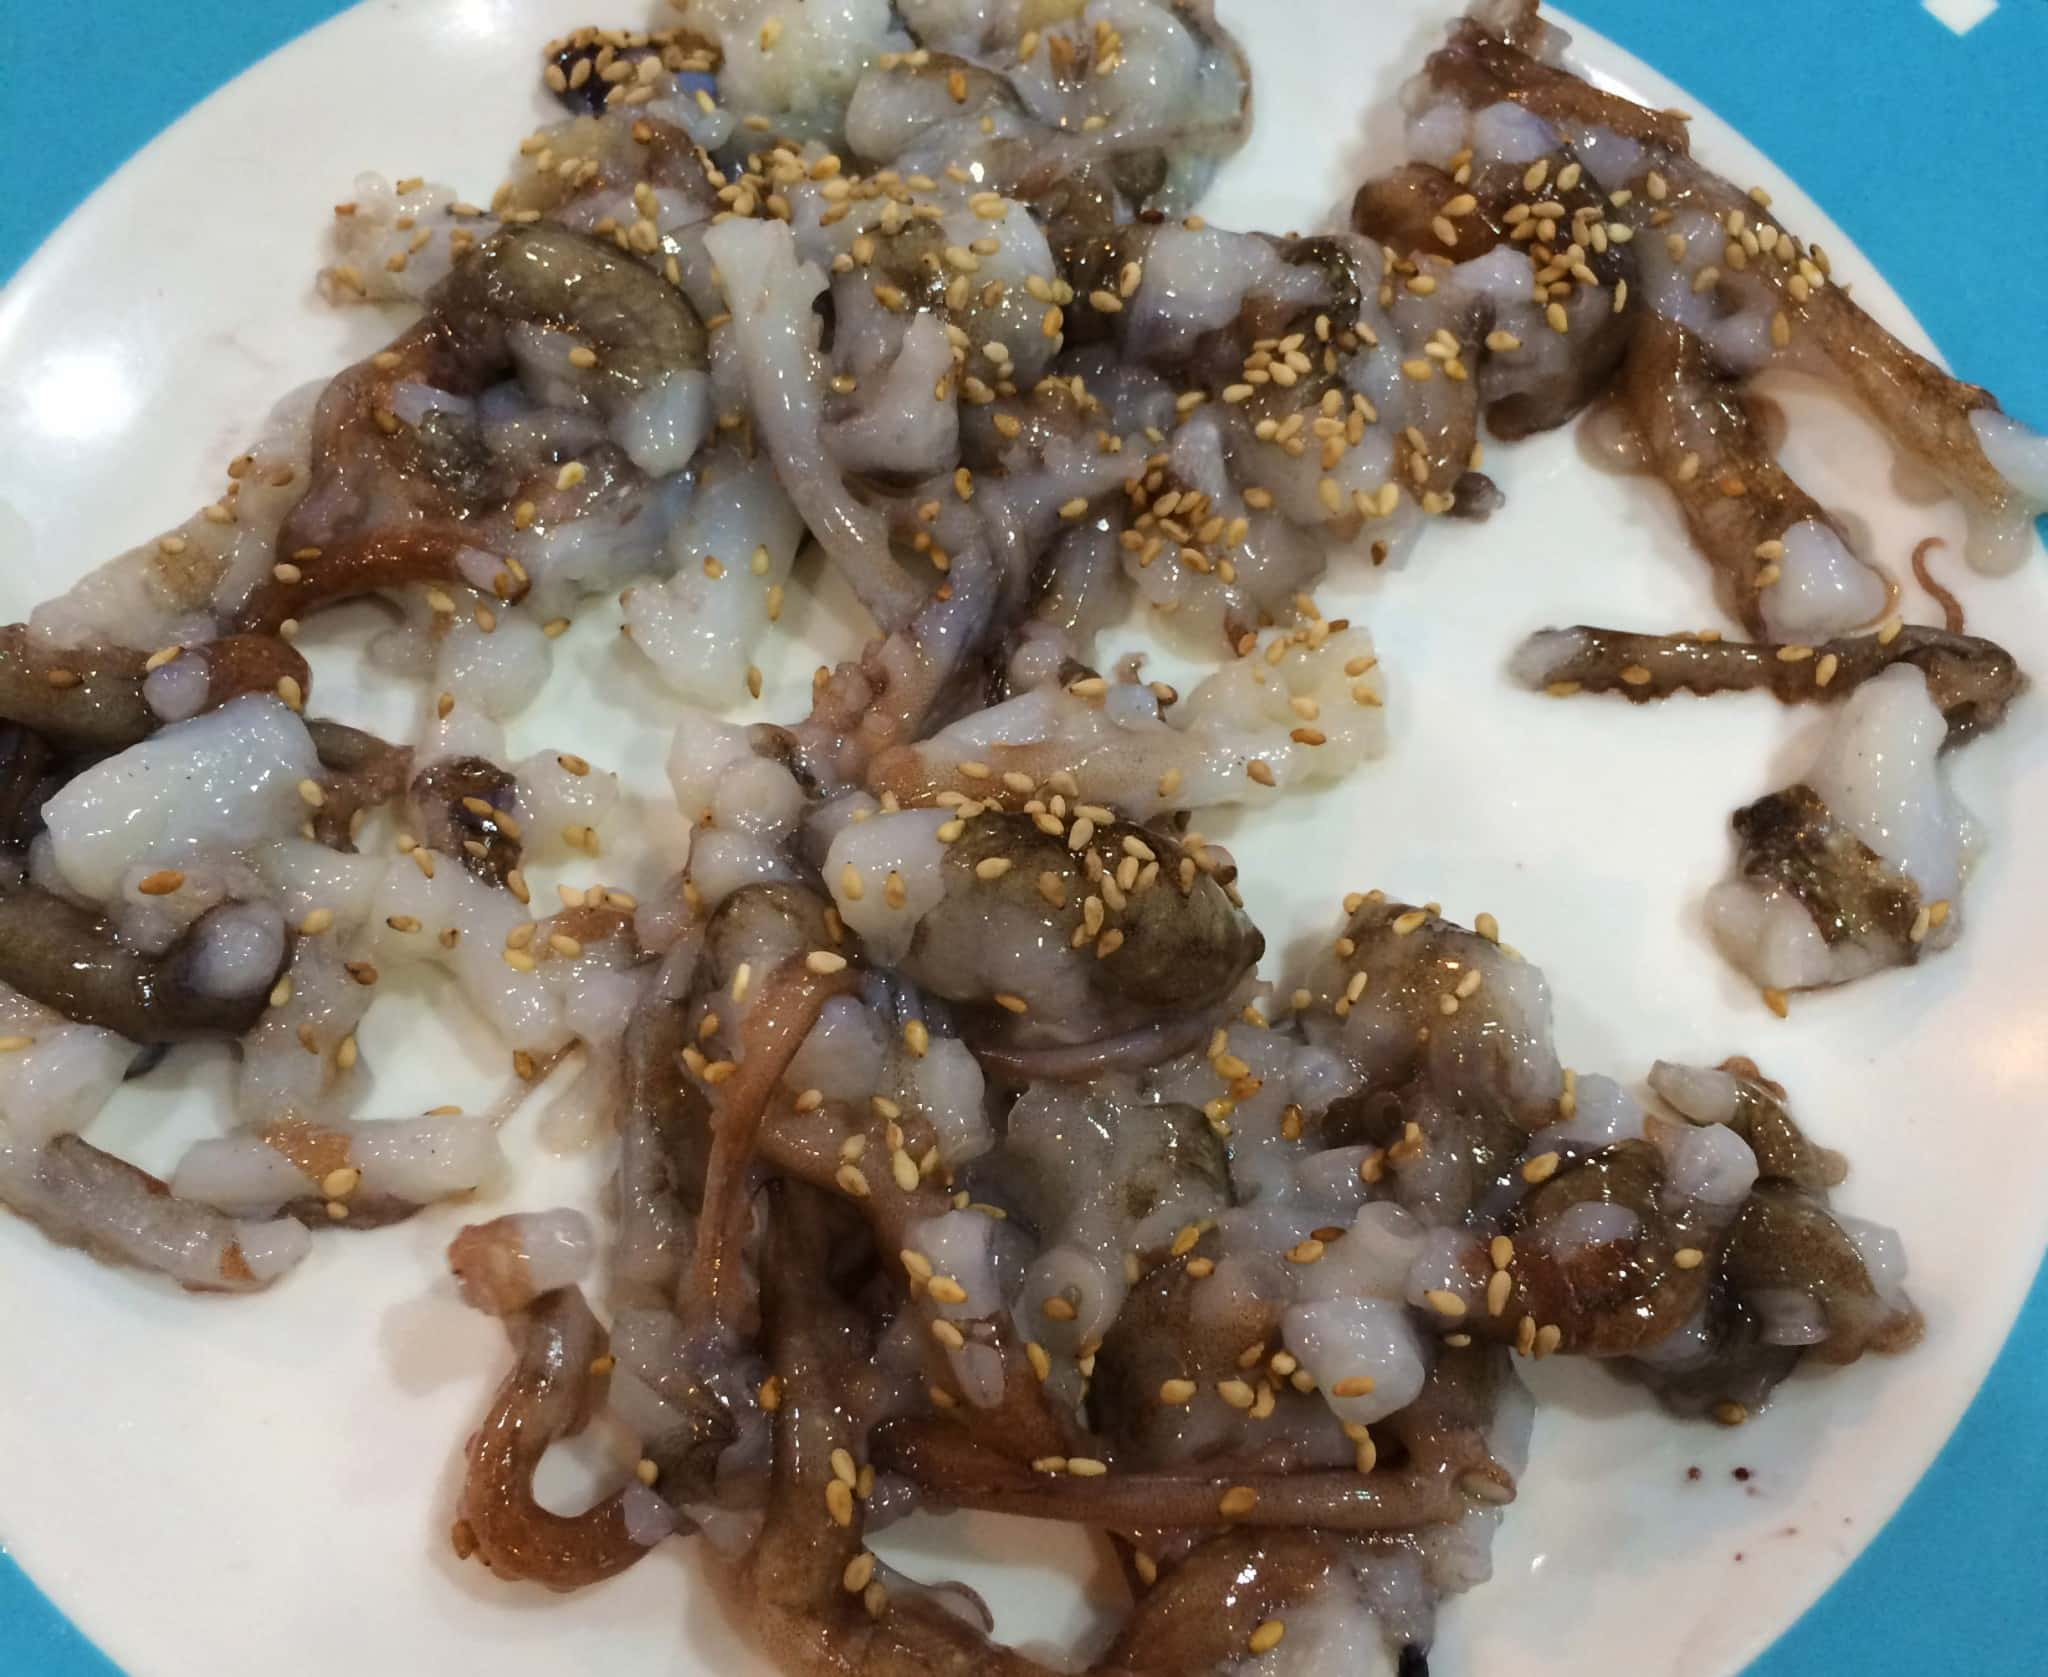 Eating Sannakji in Seoul, a live octopus